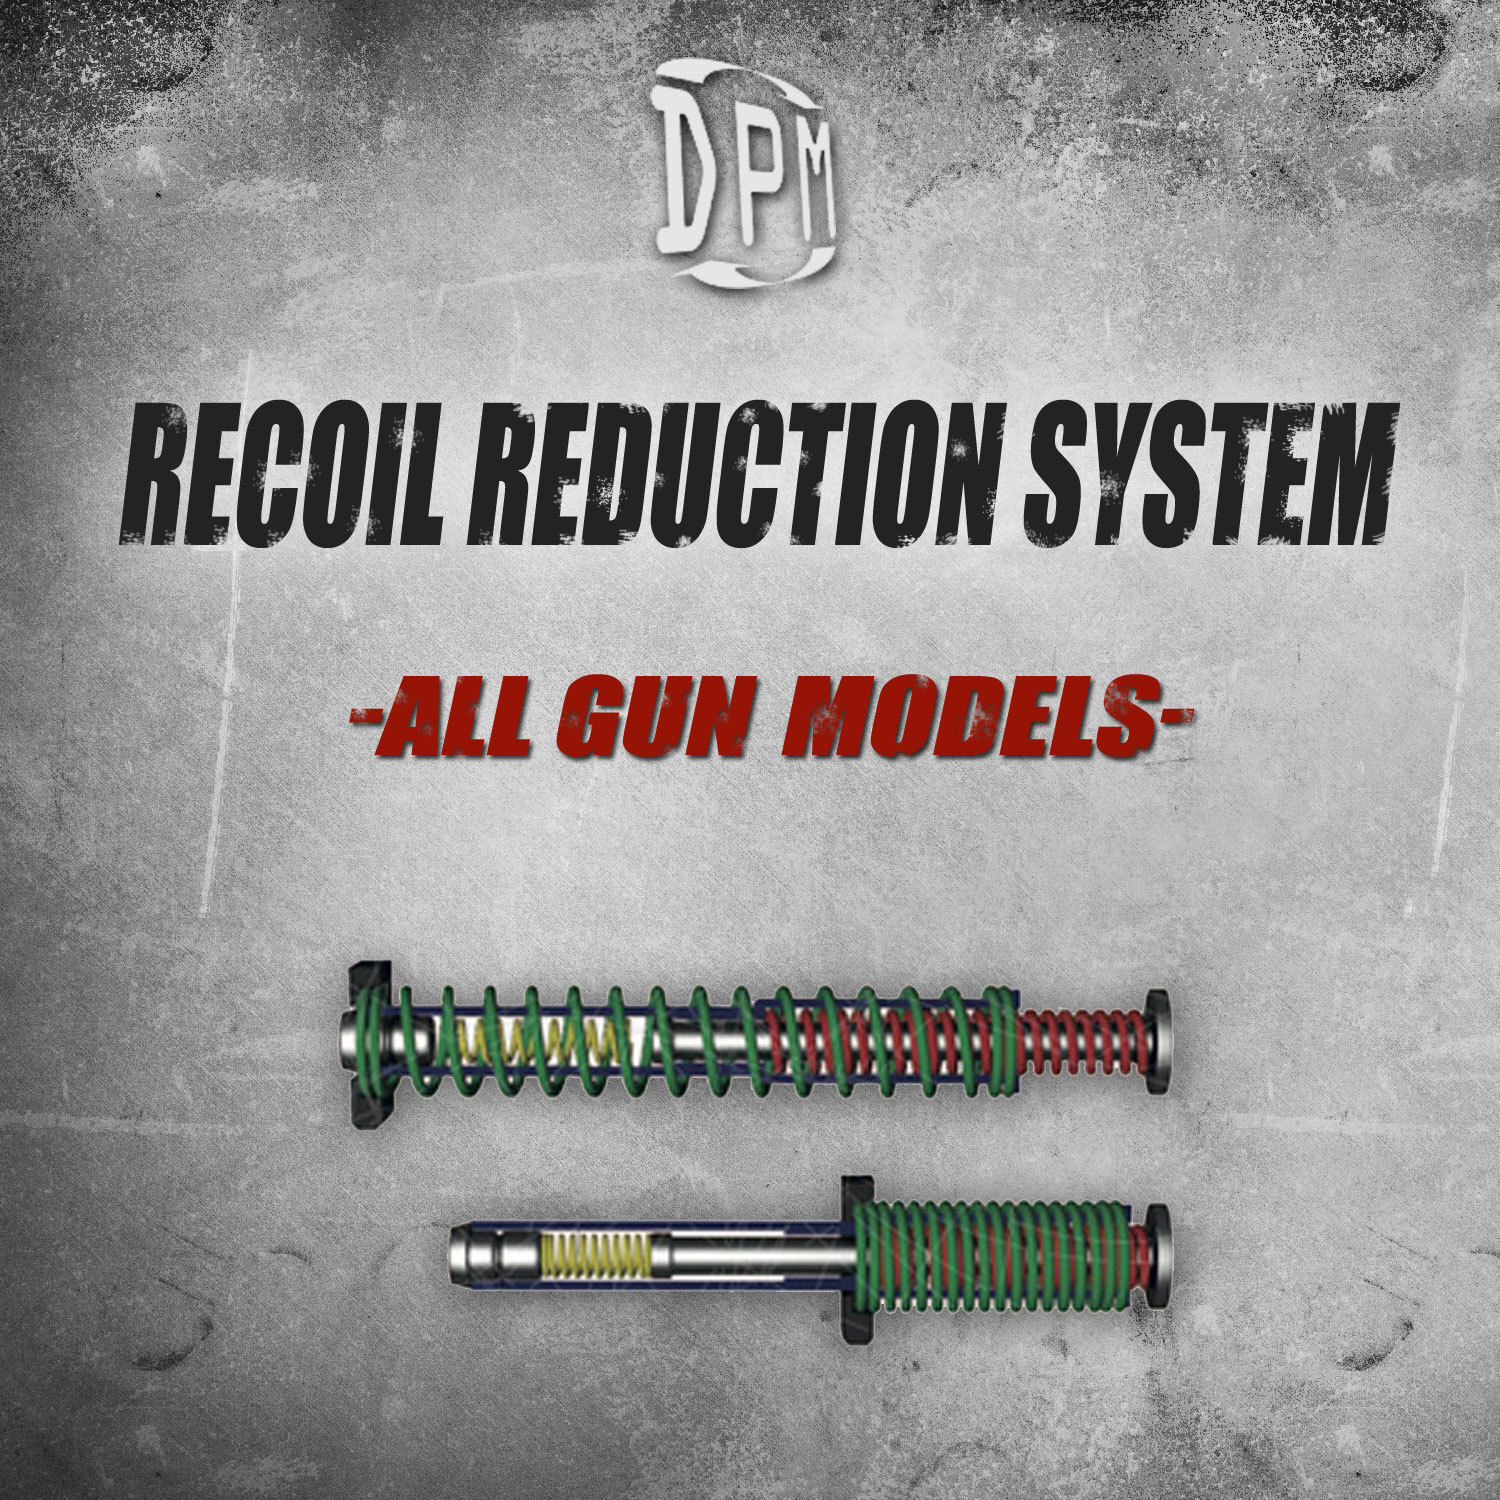 ALL DPM Multiple Springs Recoil ROTuction Systems